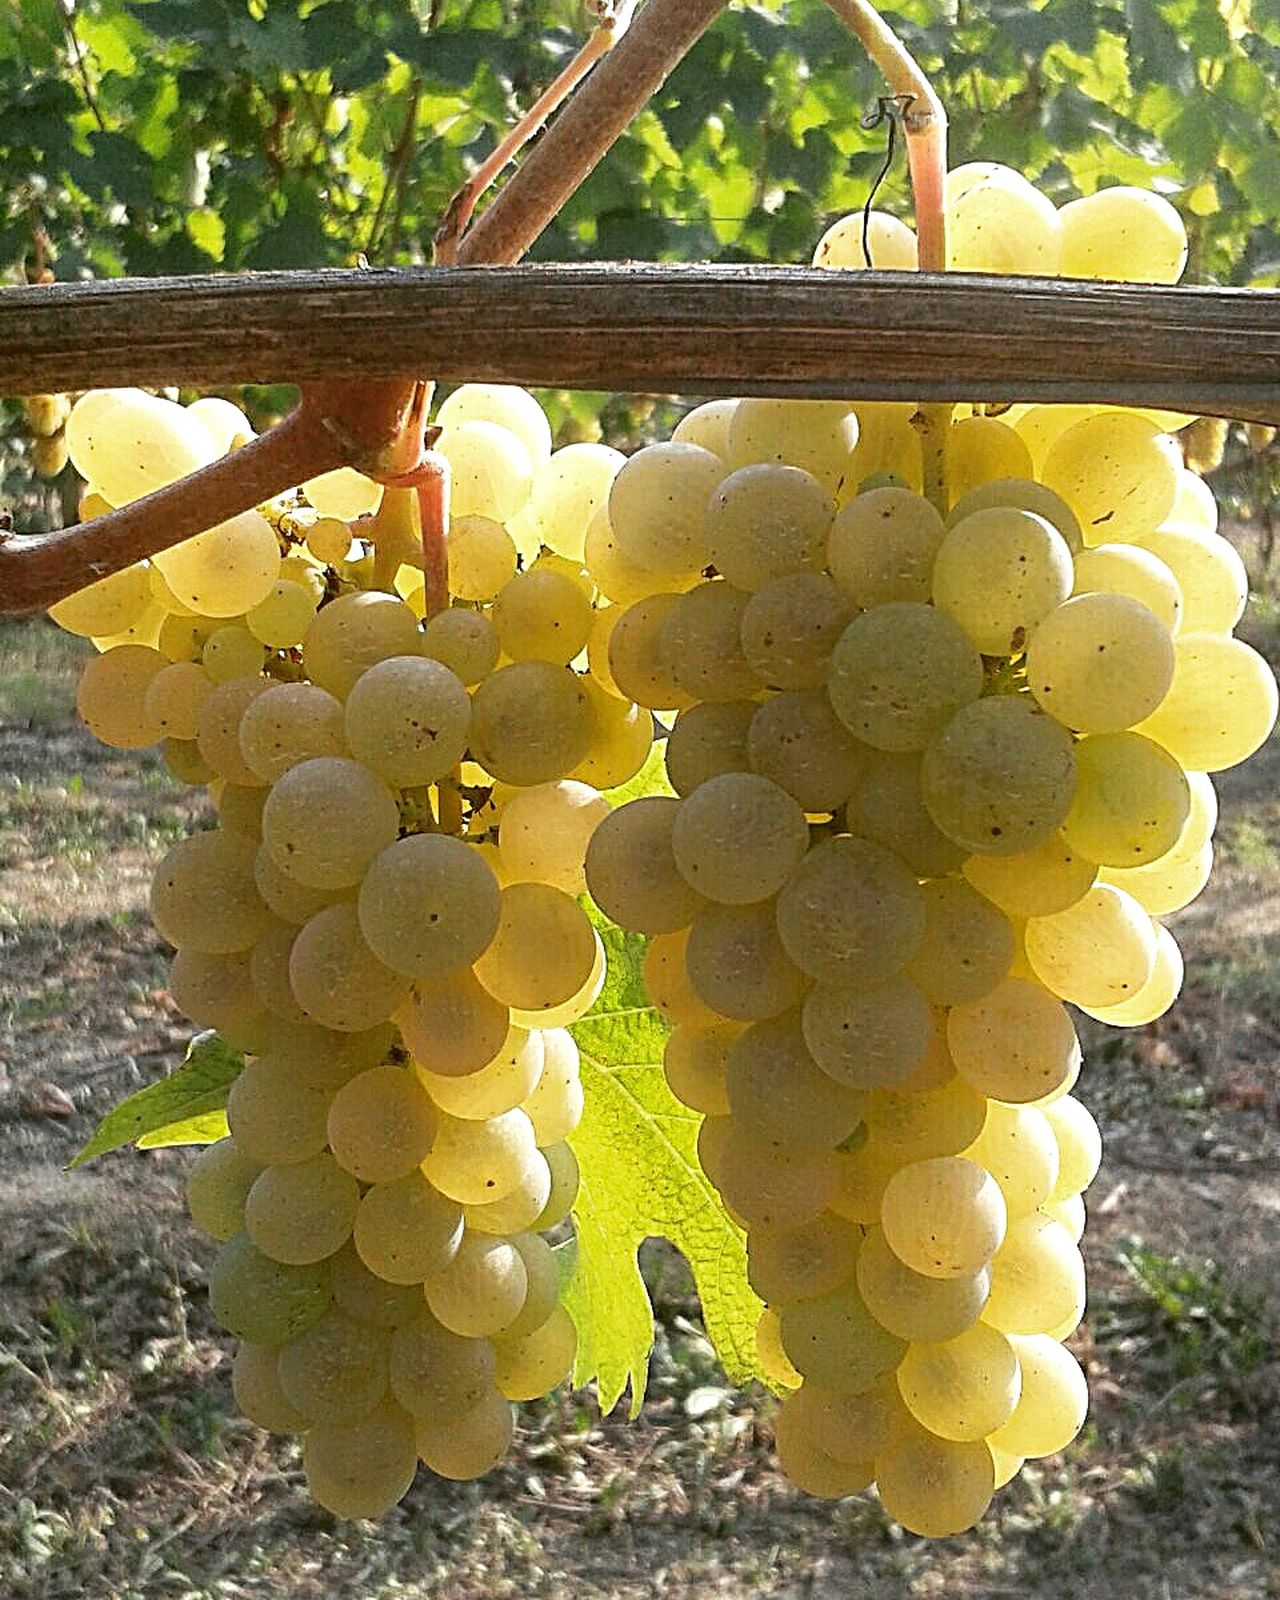 Fruit Growth Yellow Hanging Freshness Agriculture Grape Outdoors No People Nature Close-up Healthy Eating Day Arneis Grapes, Vineyard, Wine, Winery, Soft, Vineyard Location Vineyard Vineyard Cultivation Whitevine Whitegrape Vendemmia Harvest Time Italianvines Langhe Barbaresco